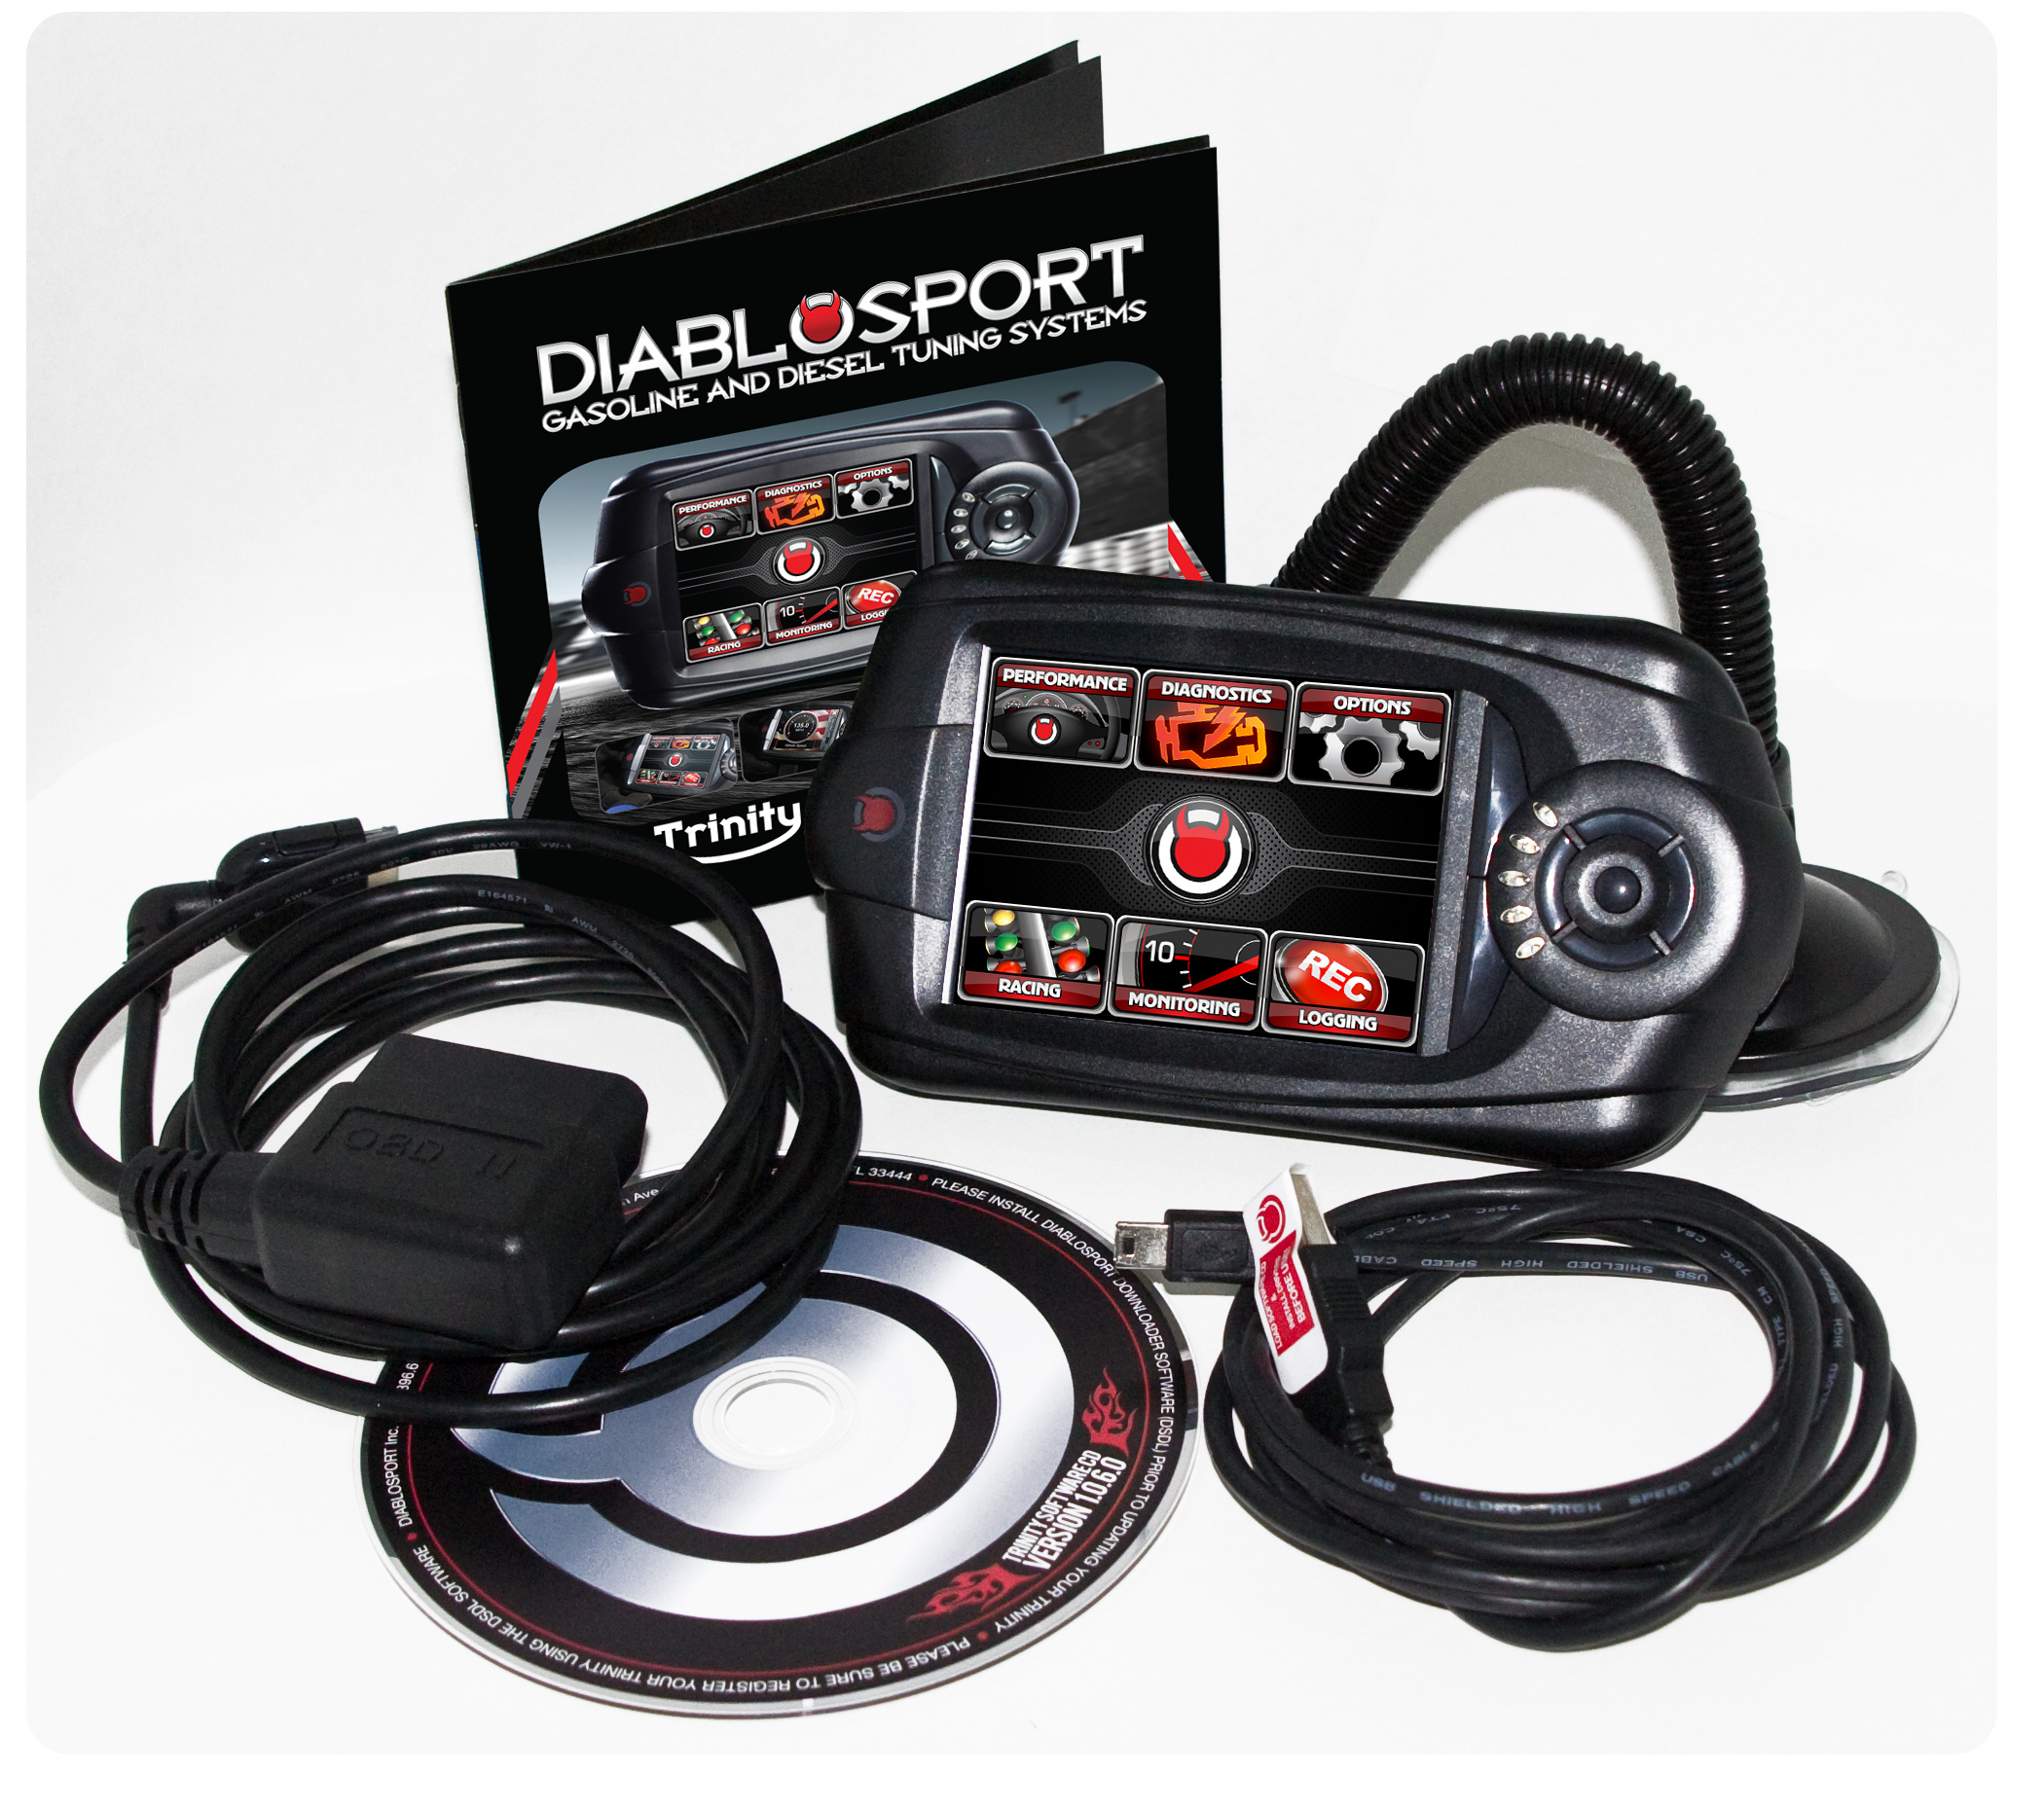 Chevrolet Tahoe 2008-2012  8.1l Diablosport T1000 Trinity Performance Tuner